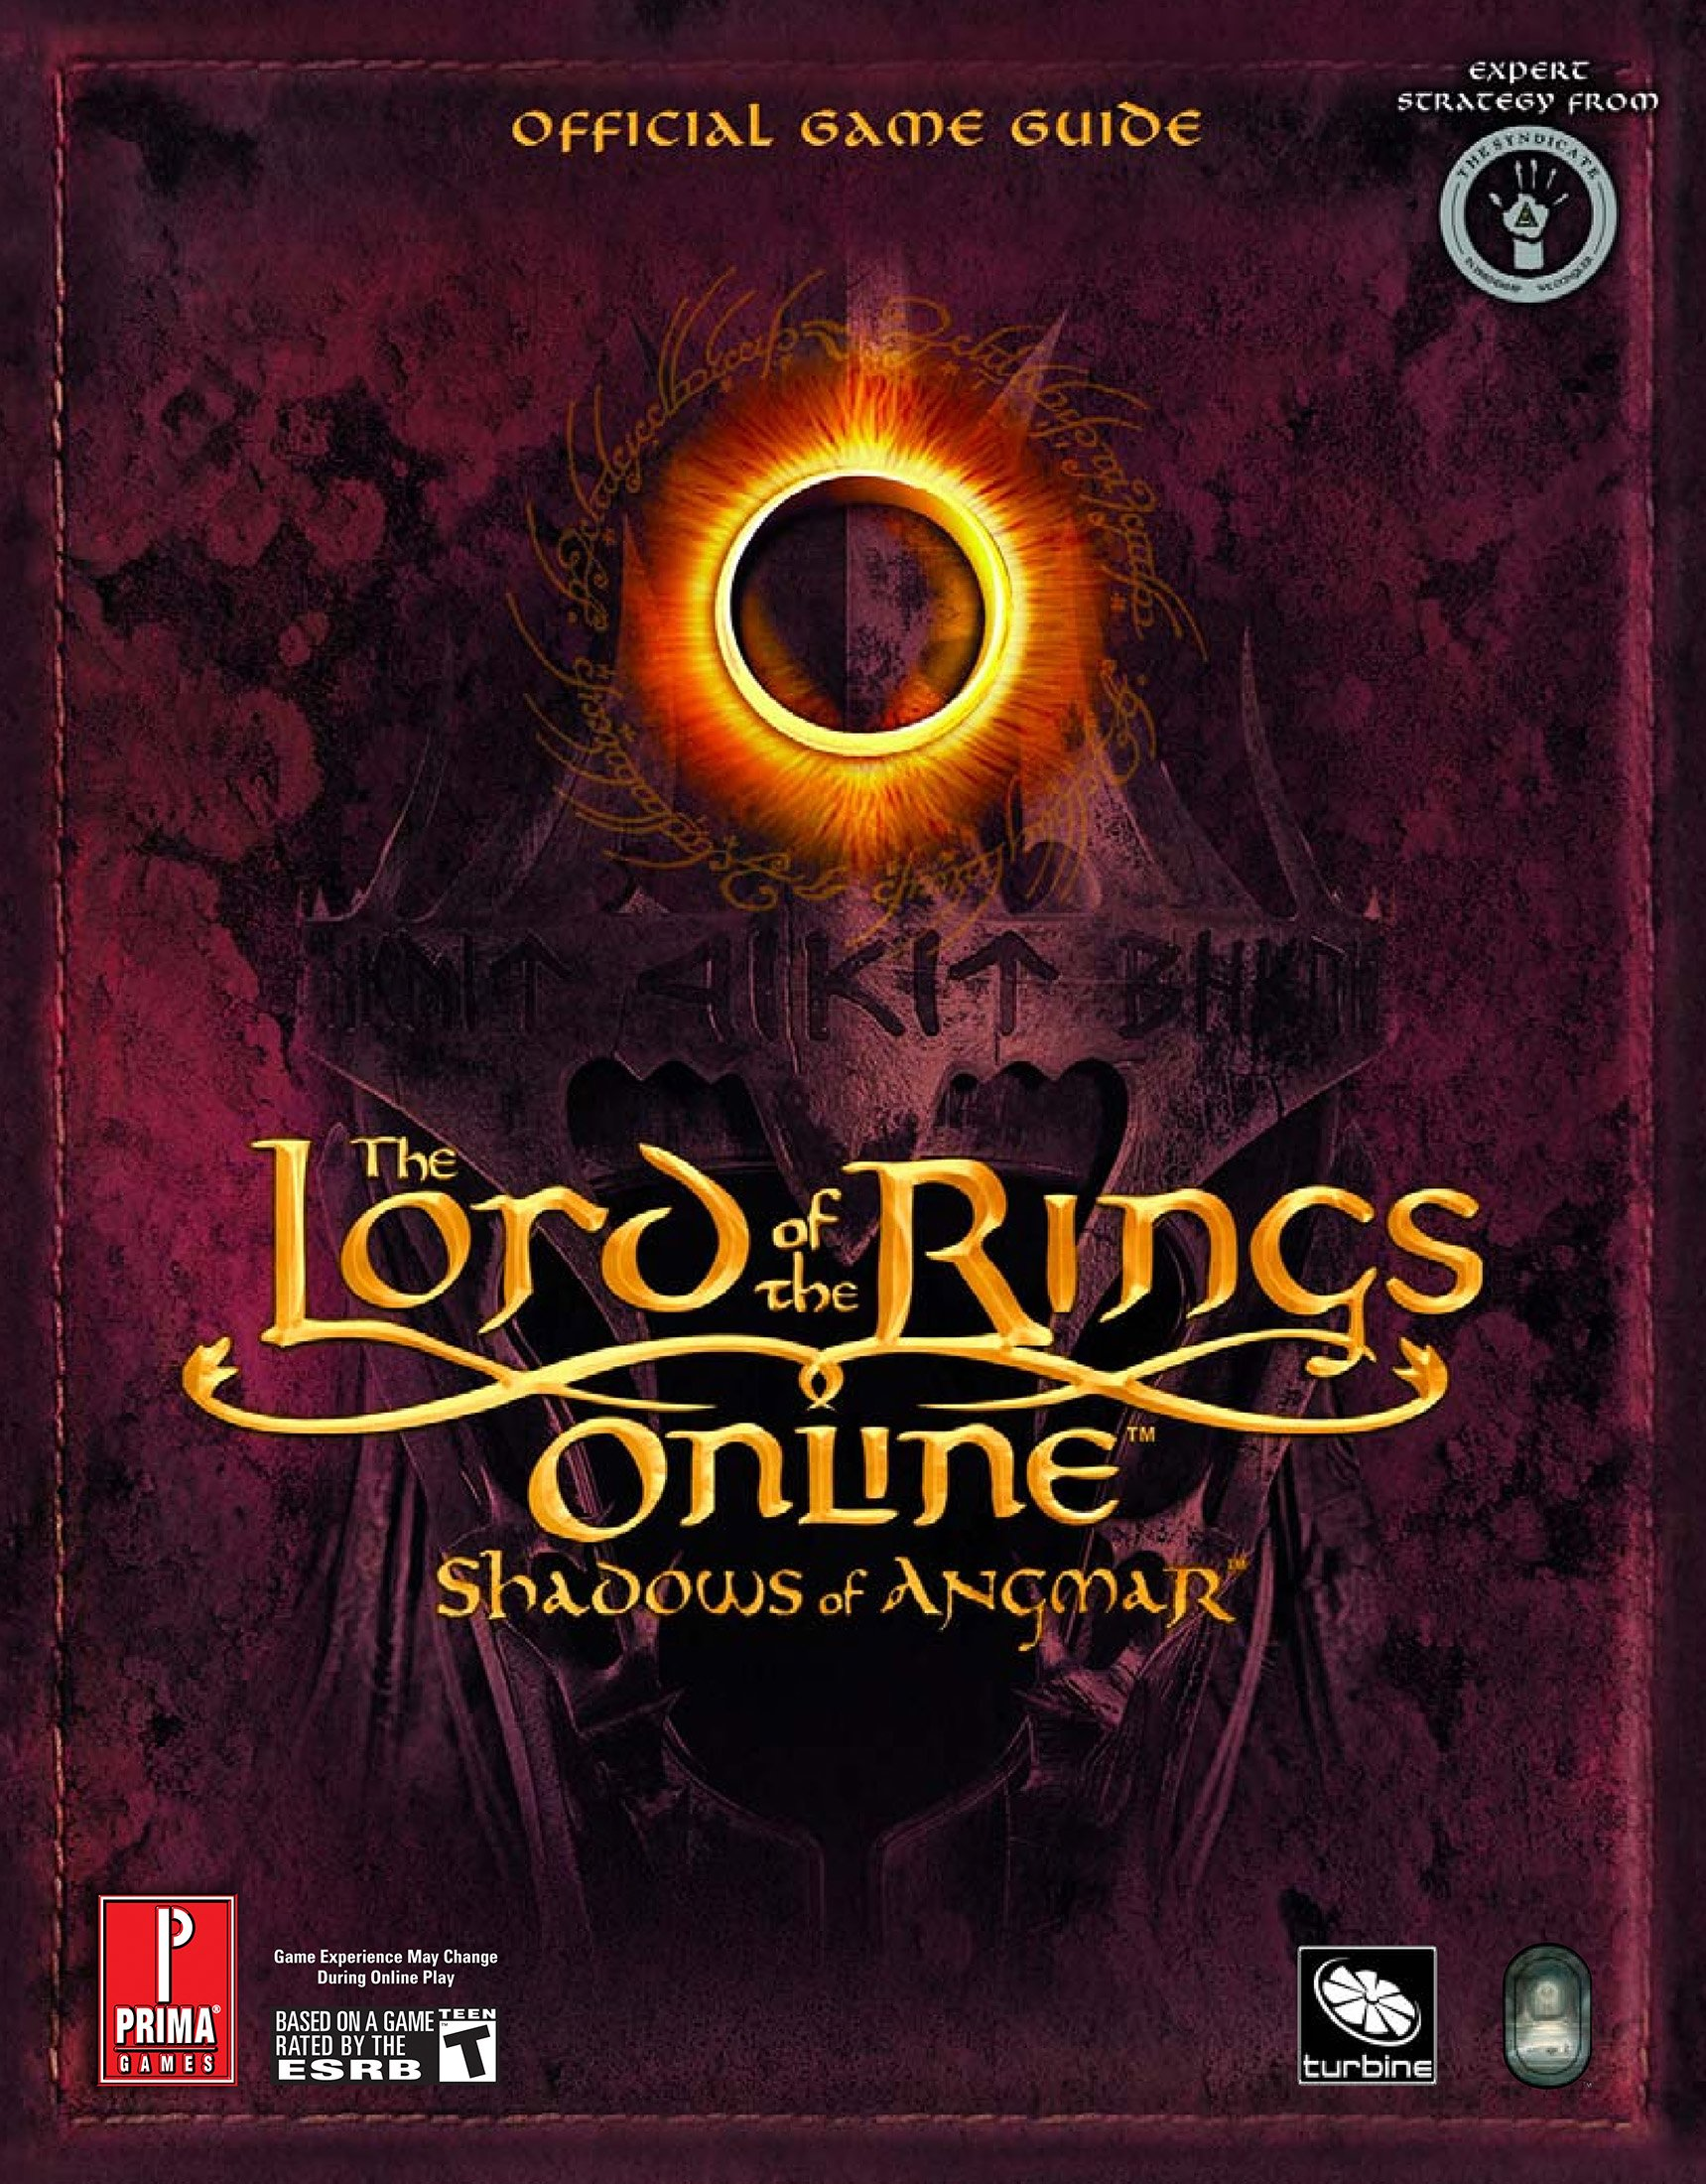 The Lord of the Rings Online Shadows of Angmar